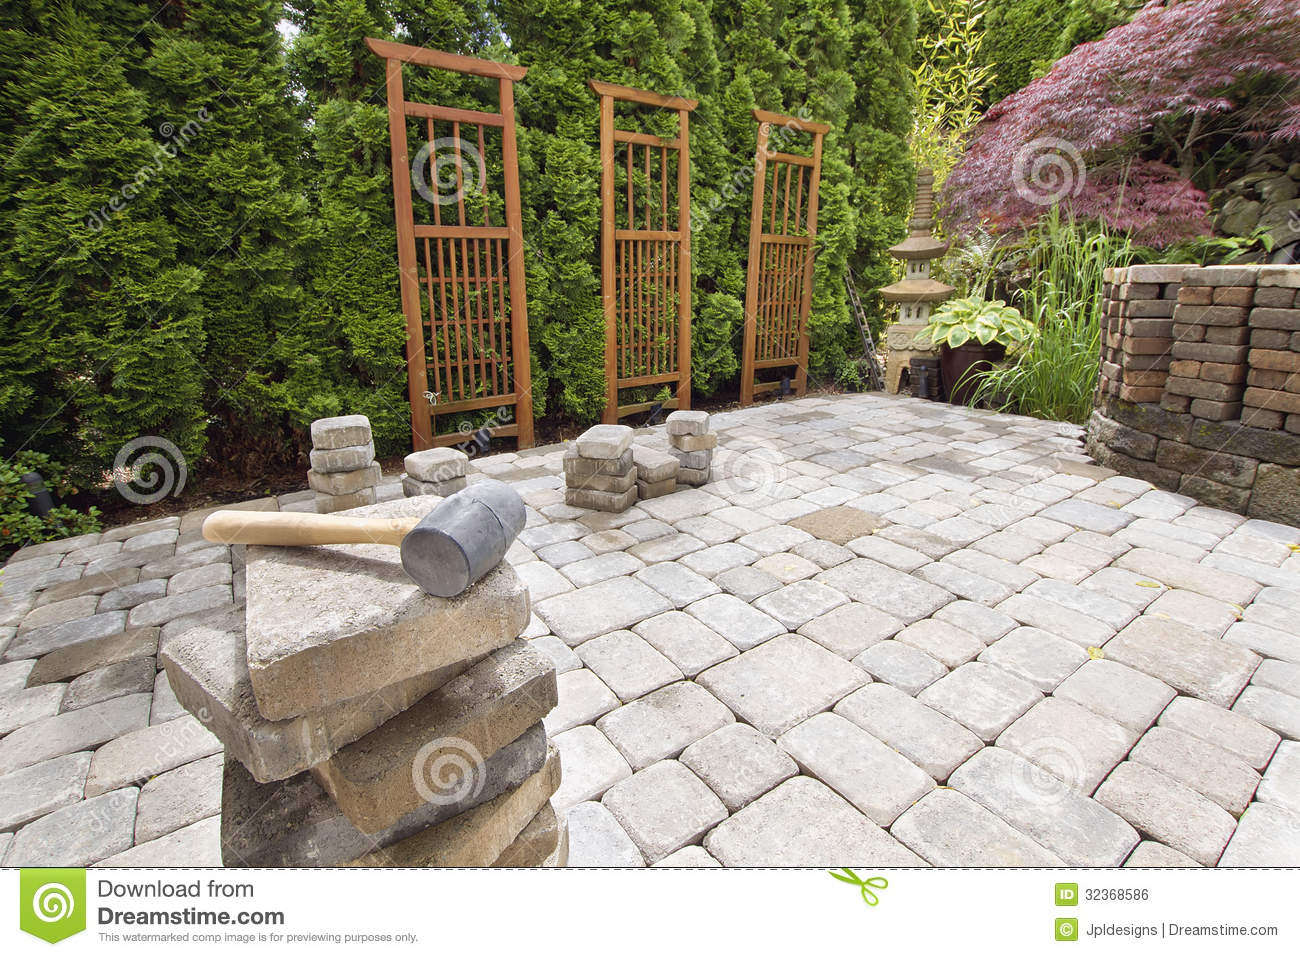 Prices On Landscaping Bricks : Stack of brick pavers for hardscape royalty free stock image